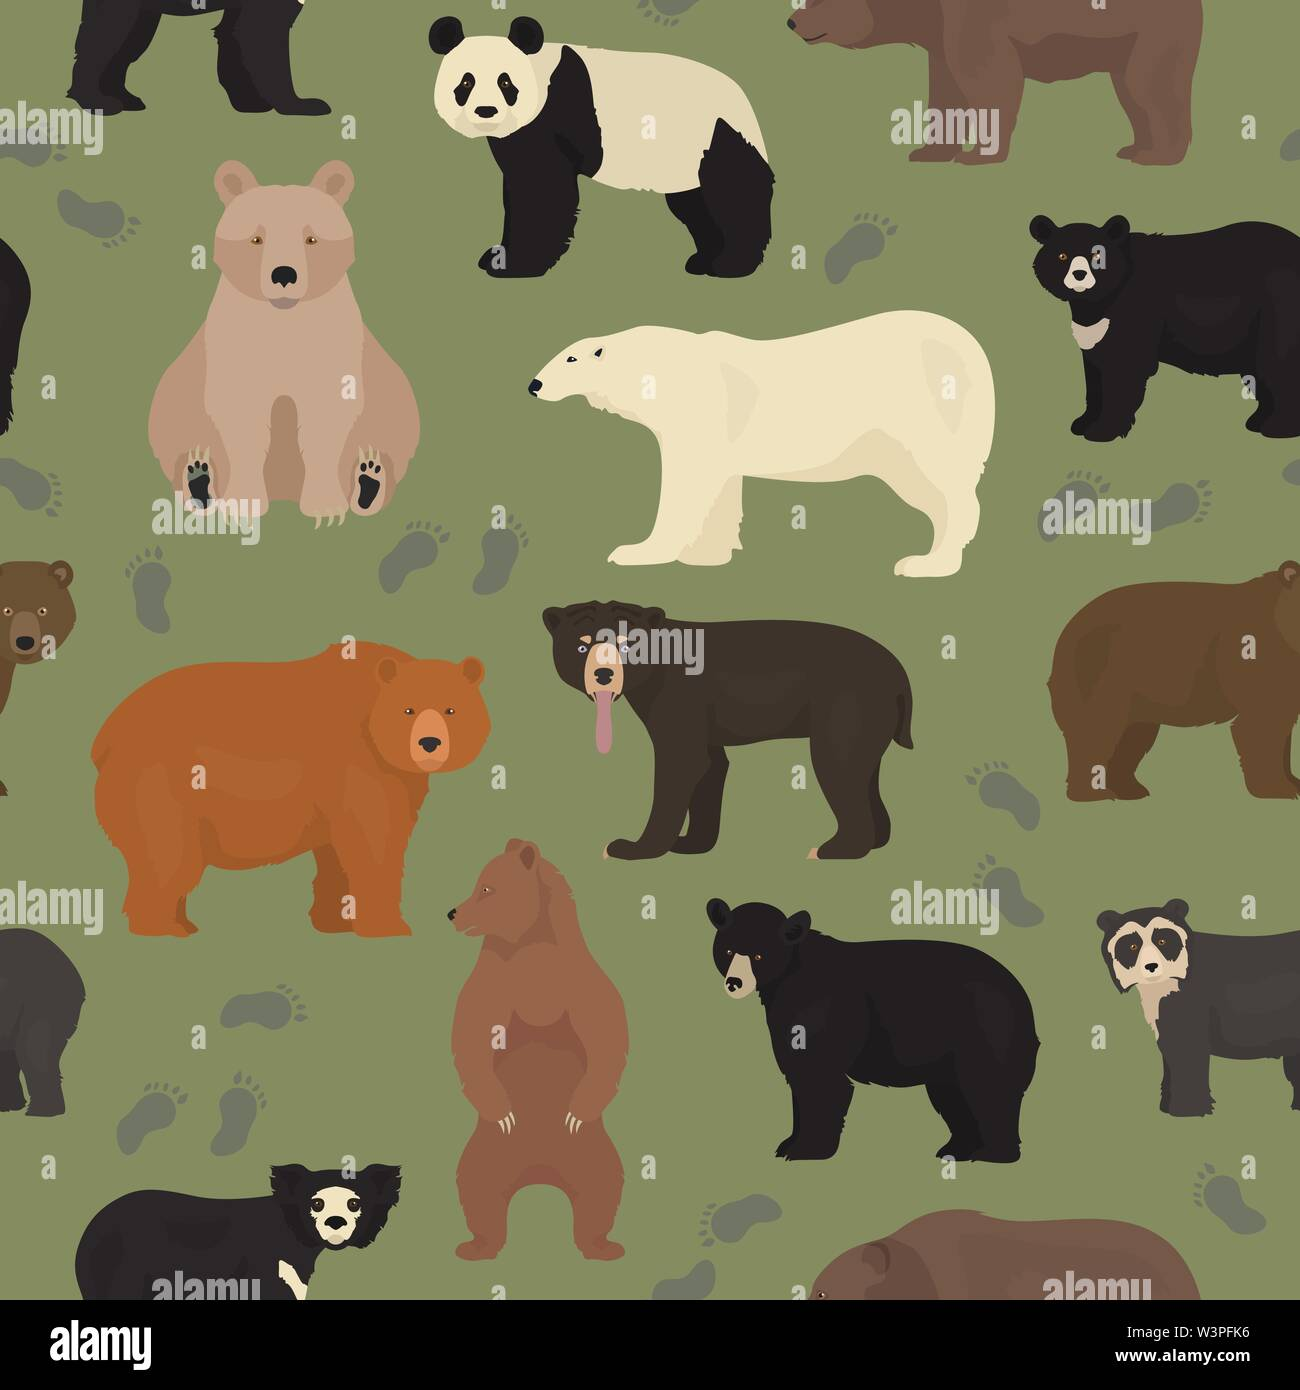 All world bear species in one set. Bears seamless pattern. Vector illustration Stock Vector